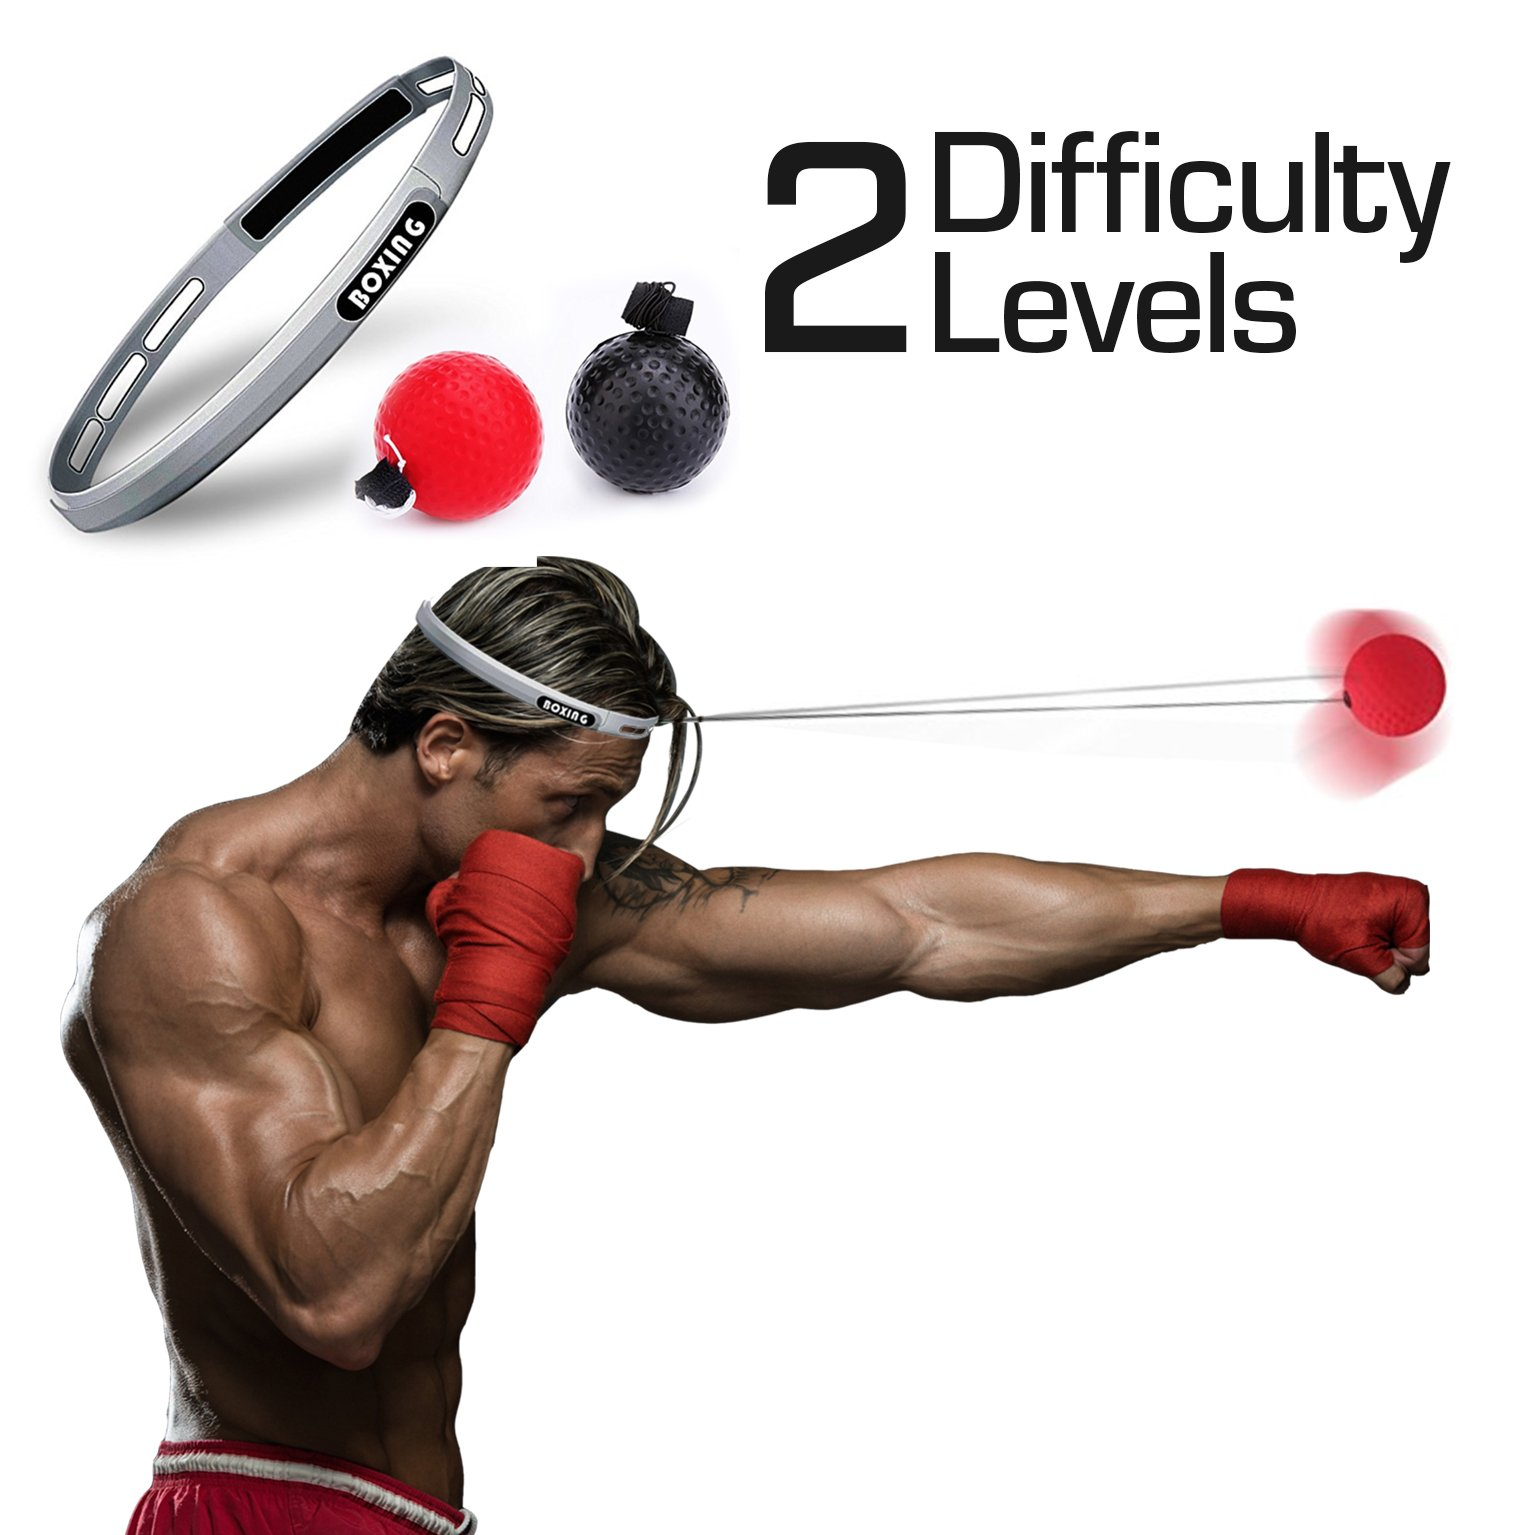 Origin Labs Boxing Reflex Ball - Headband and Boxing Punch Ball with 2 Difficulty Levels for Training Speed, Reaction Time, and Hand Coordination